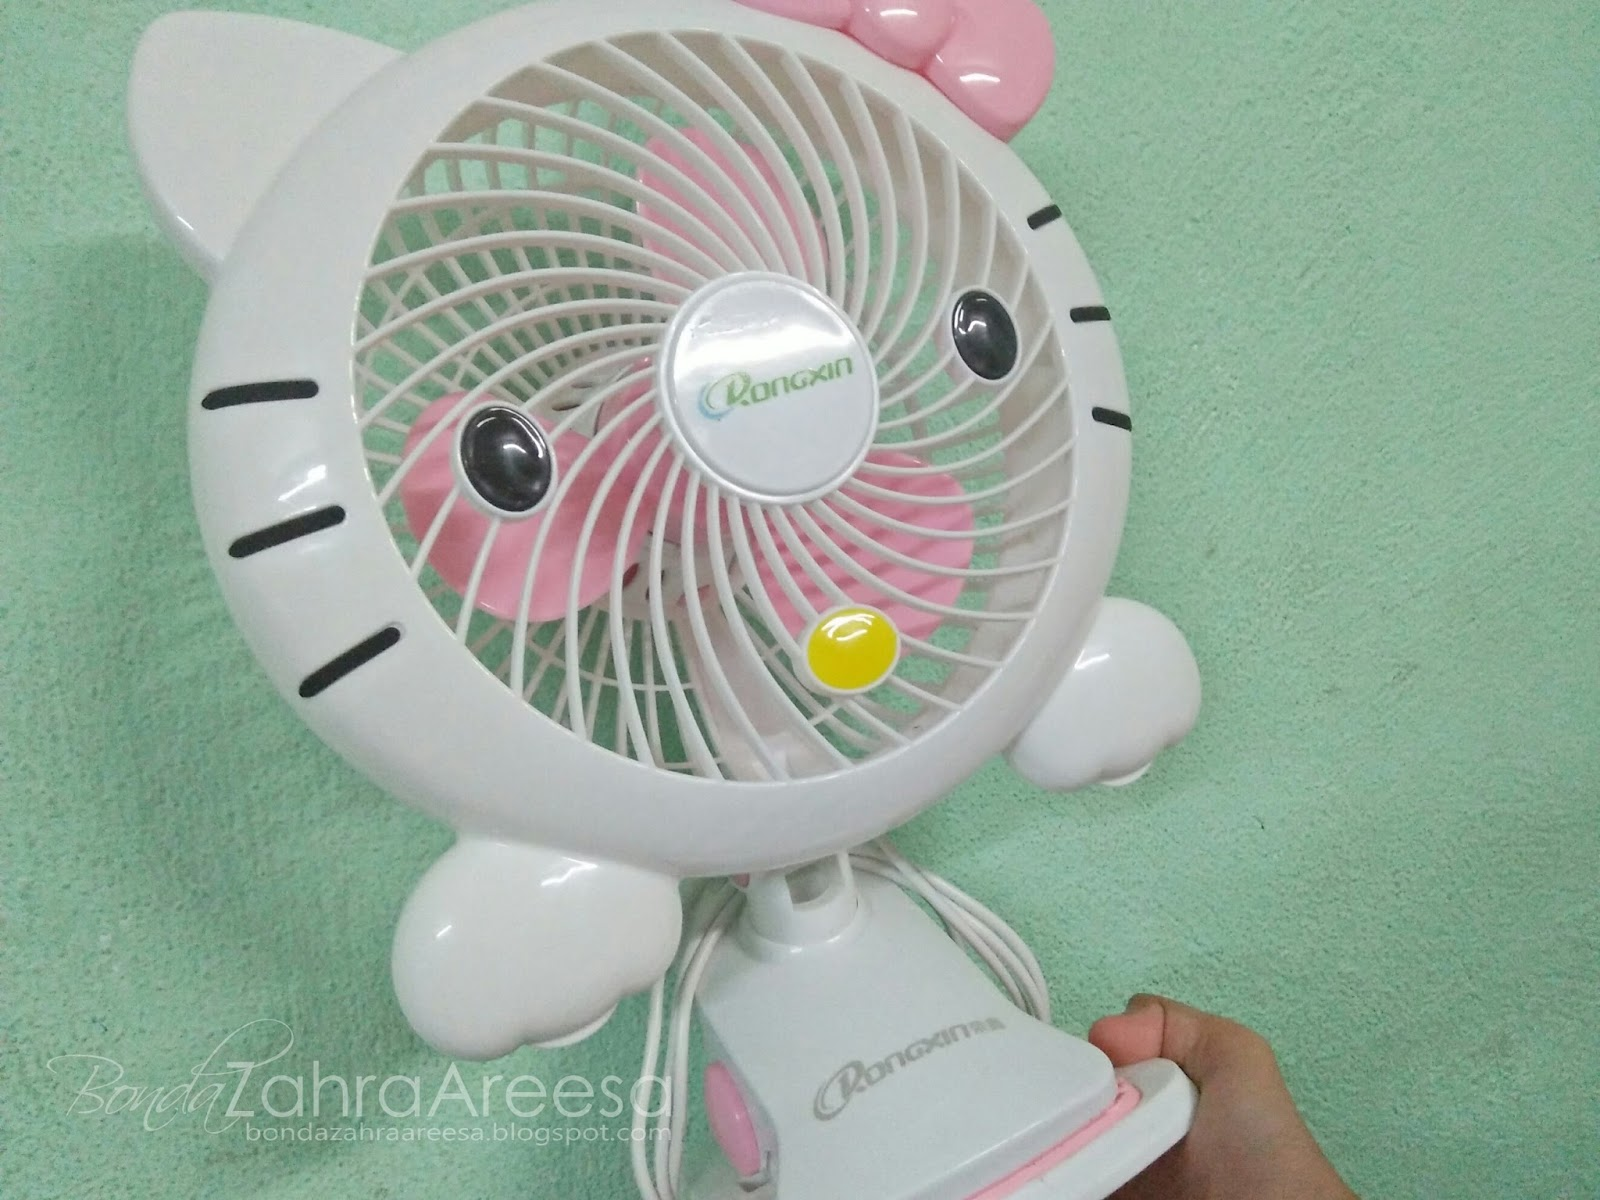 Koleksi Barangan Hello Kitty Zahra